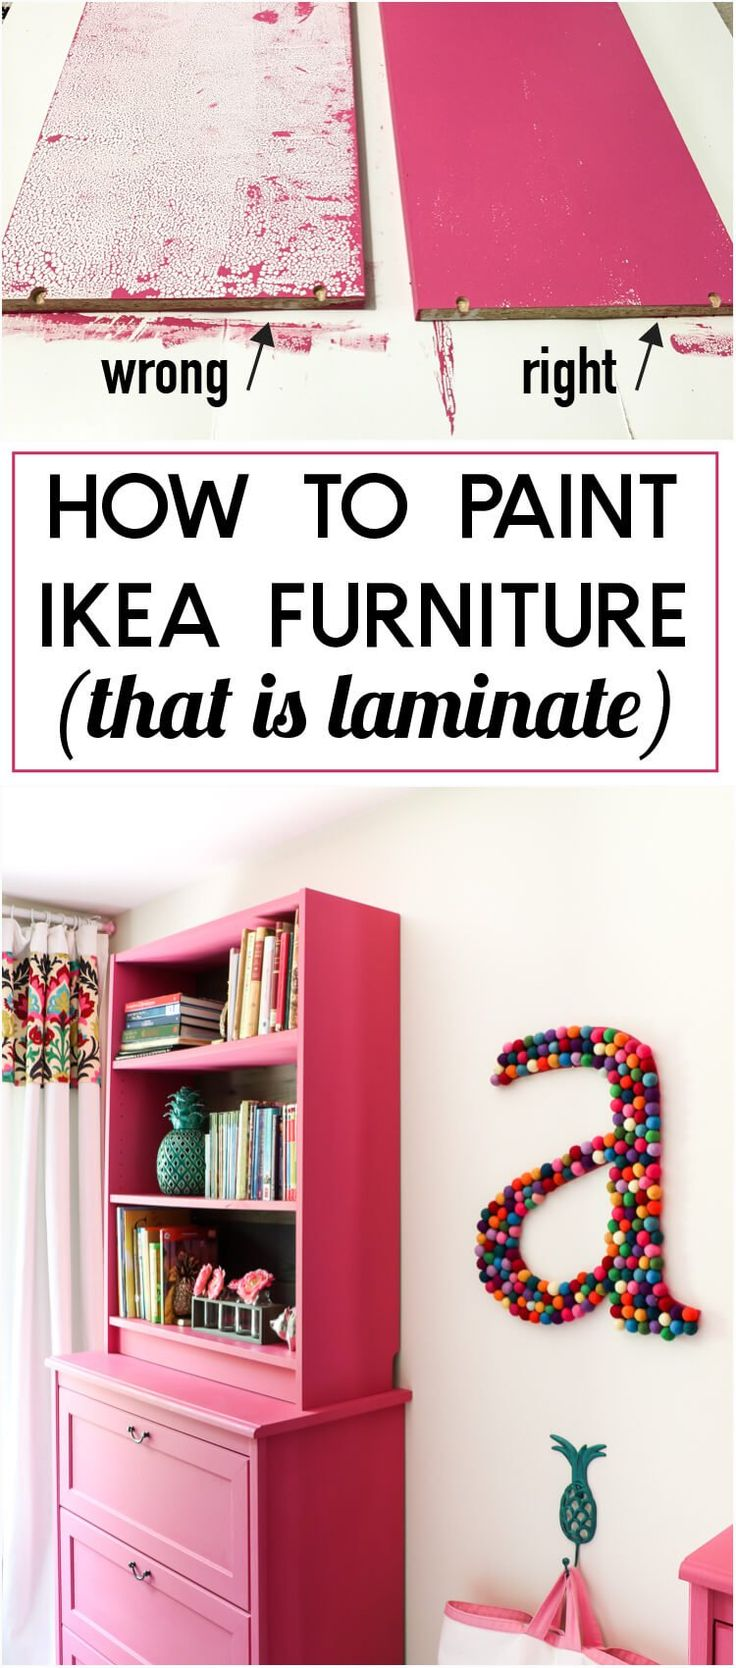 There Is A CRUCIAL TRICK To Painting Ikea Furniture That Is Laminate! Iu0027ve